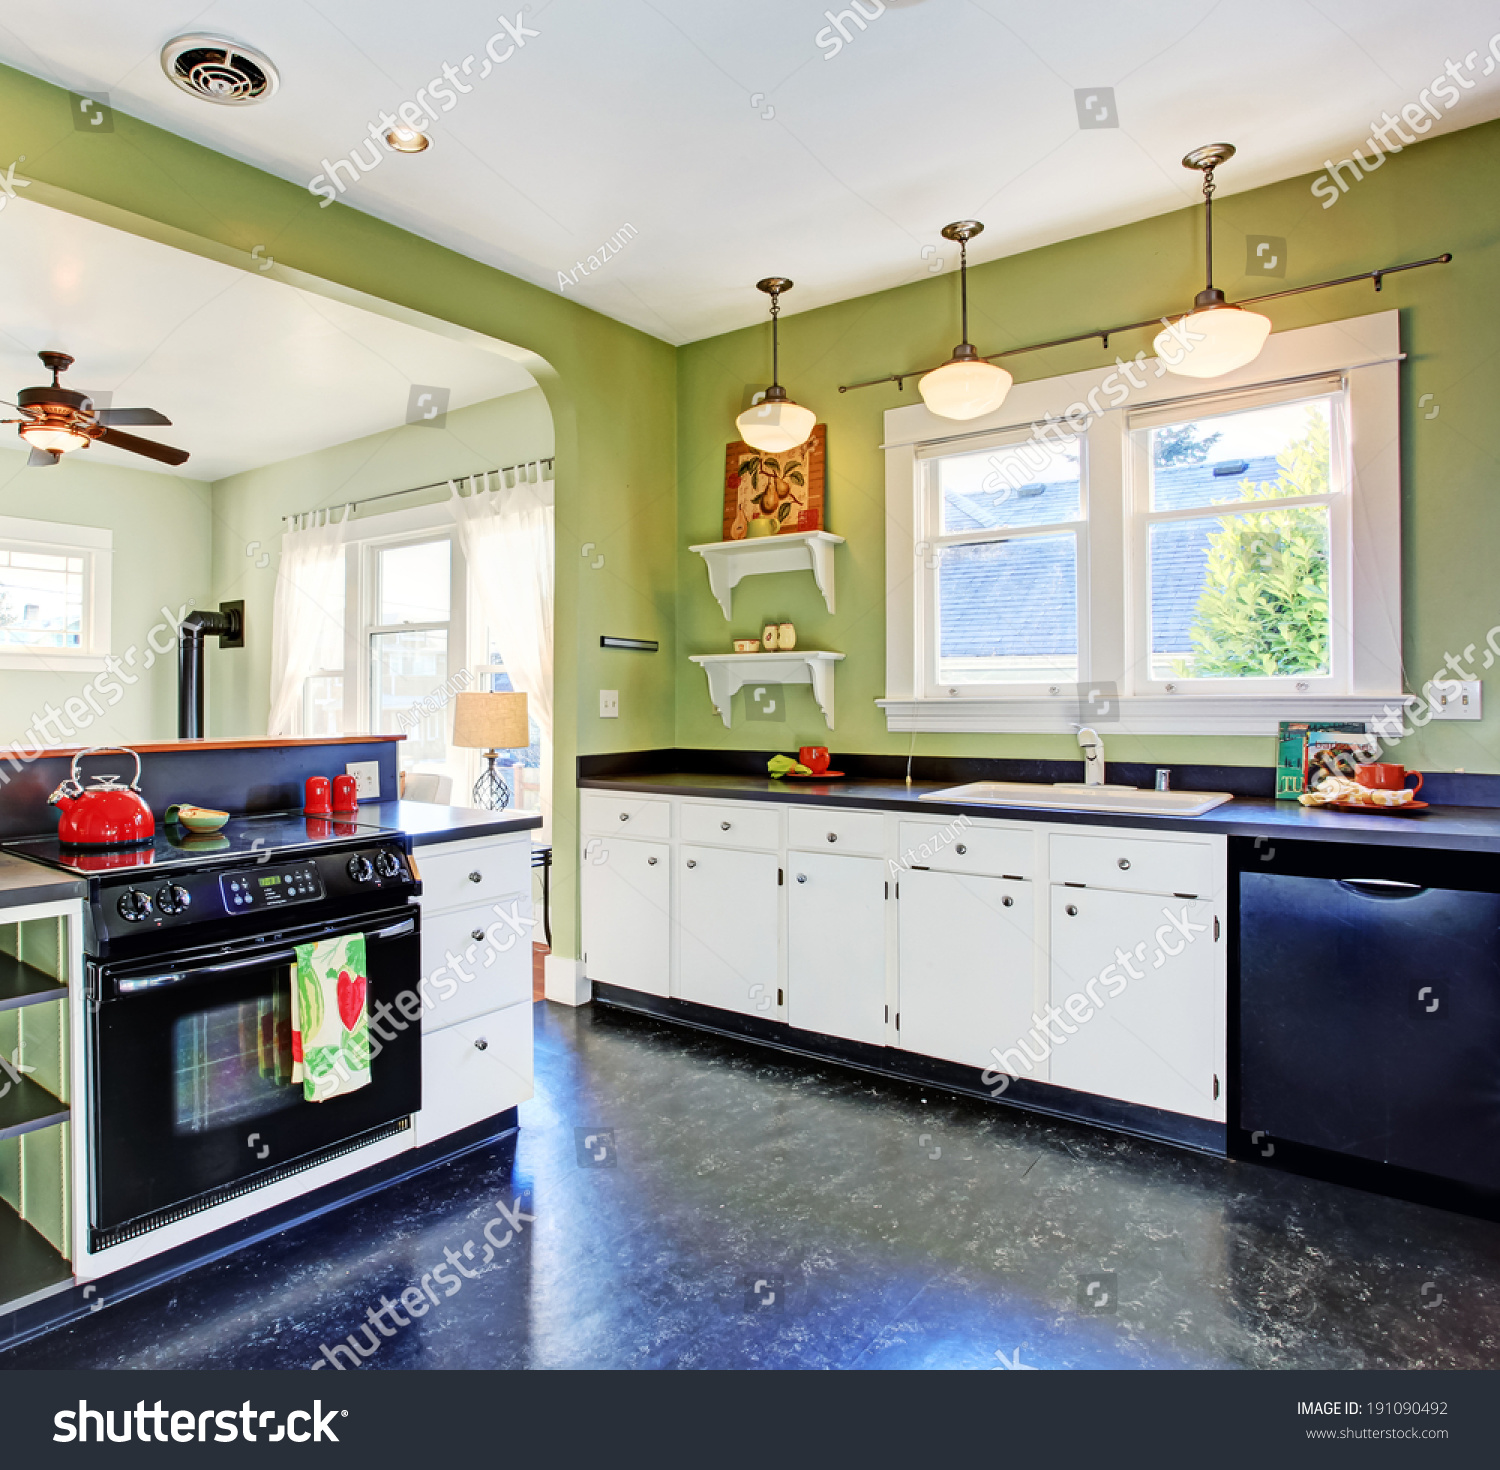 Kitchen Ro Green Walls White Cabinets Stock Photo & Image (Royalty